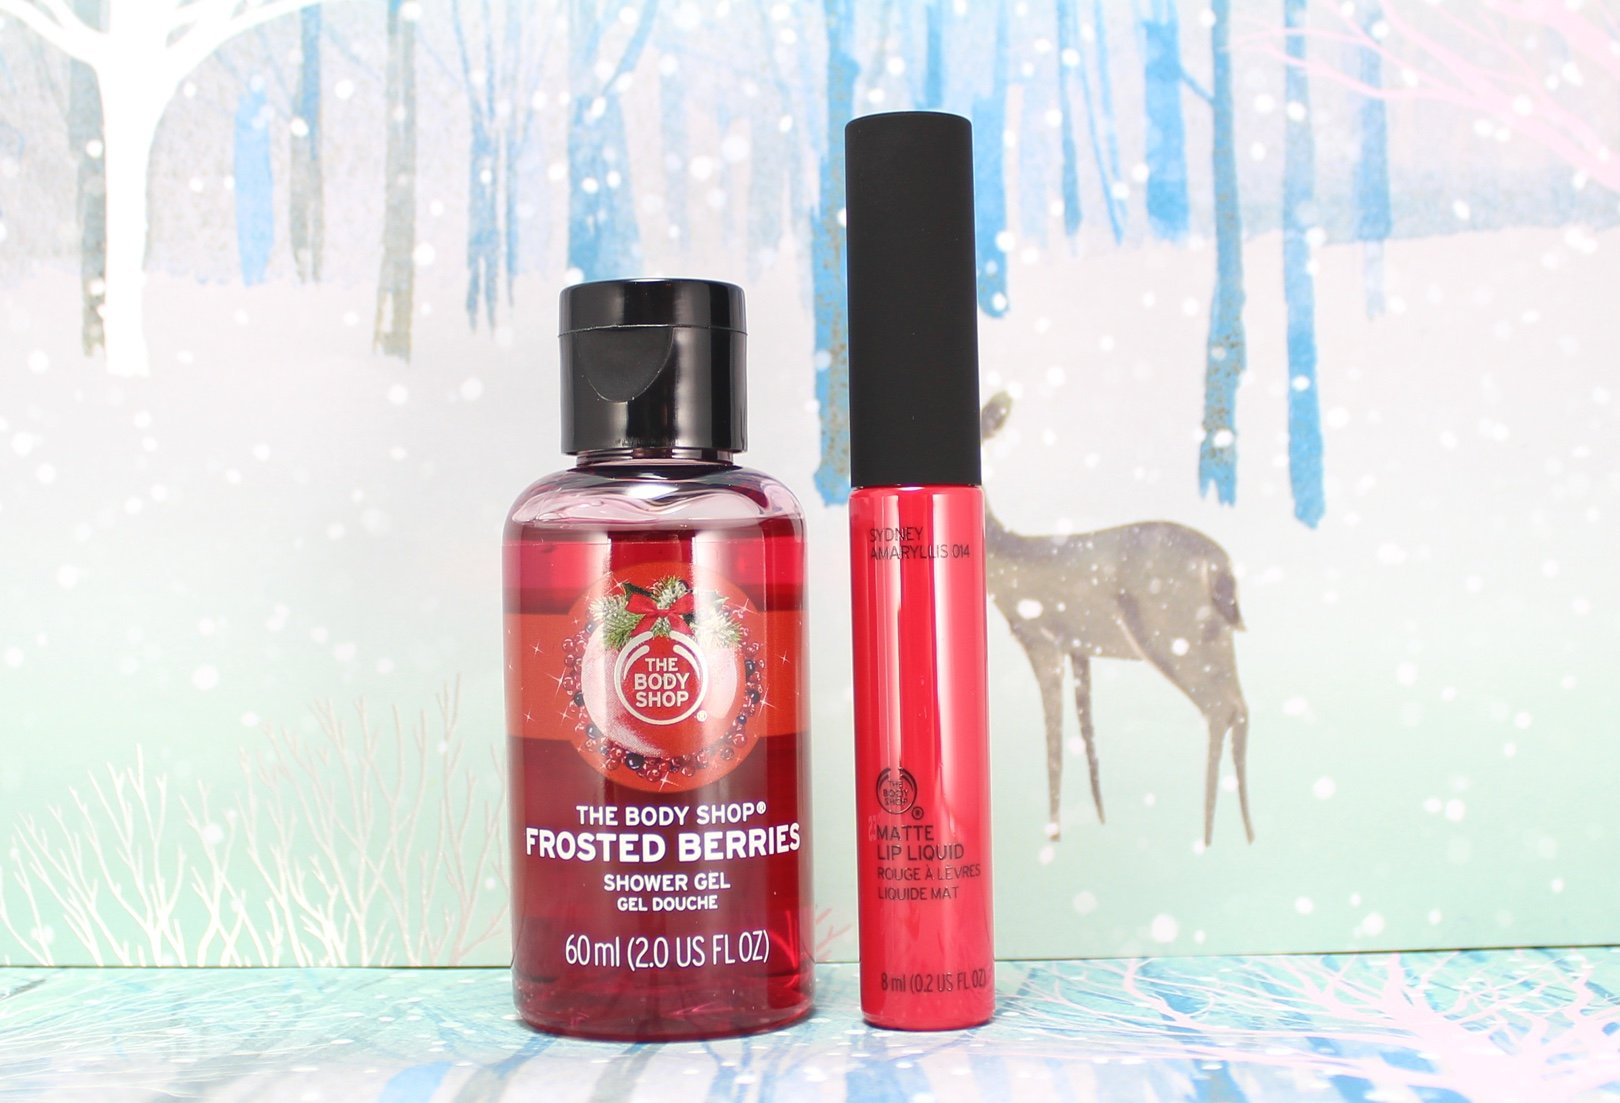 The Body Shop Deluxe Advent Calendar: Days 11-12 review